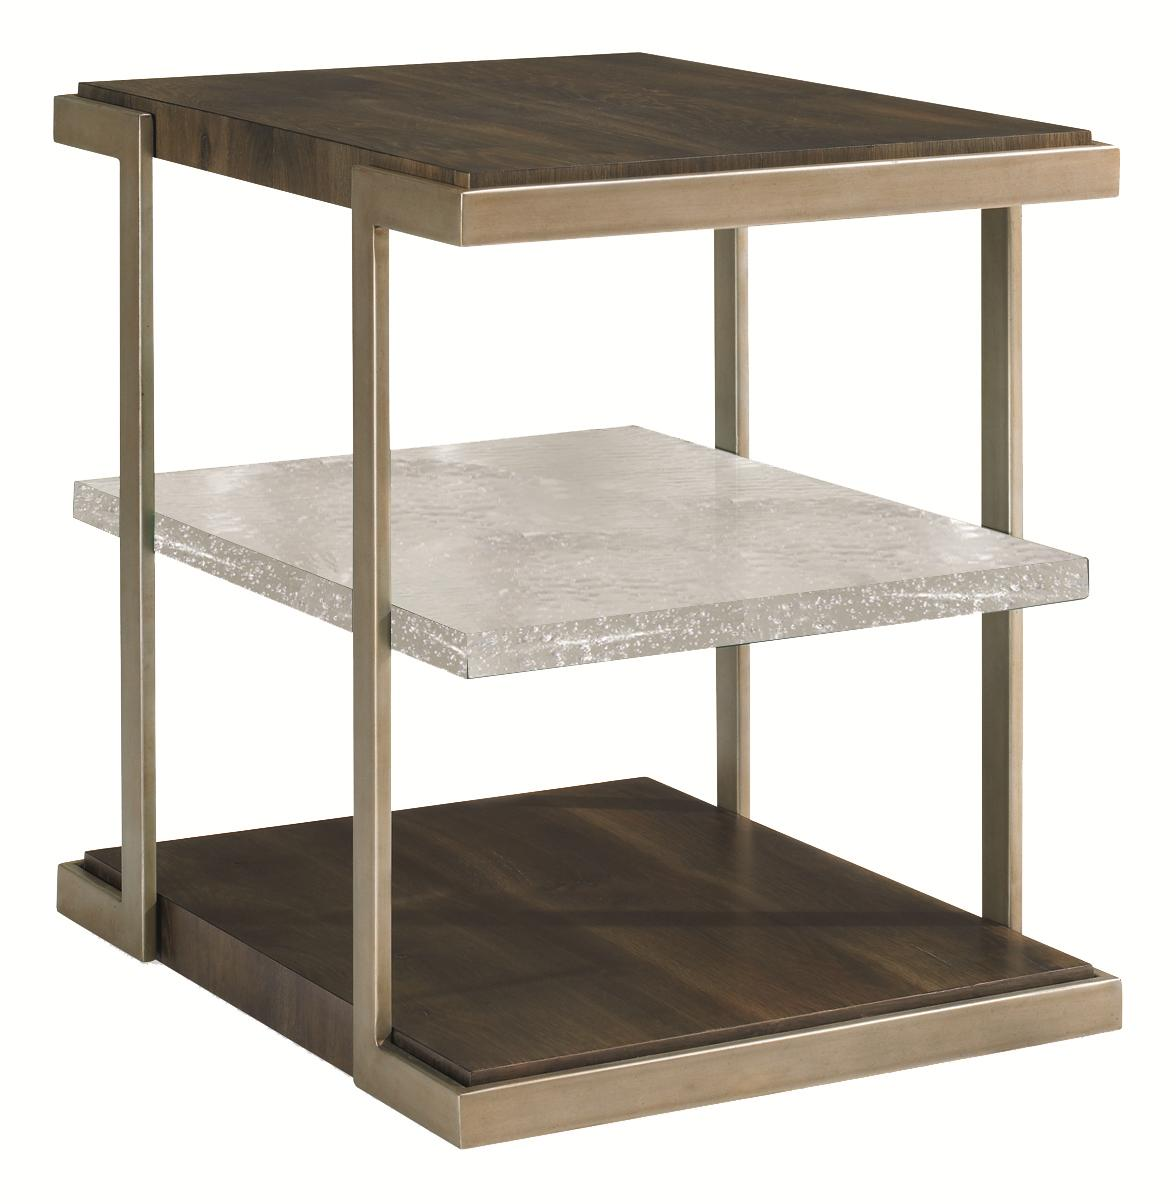 Schnadig Modern Artisan Artisans End Table - Item Number: ATS-ENDTAB-002